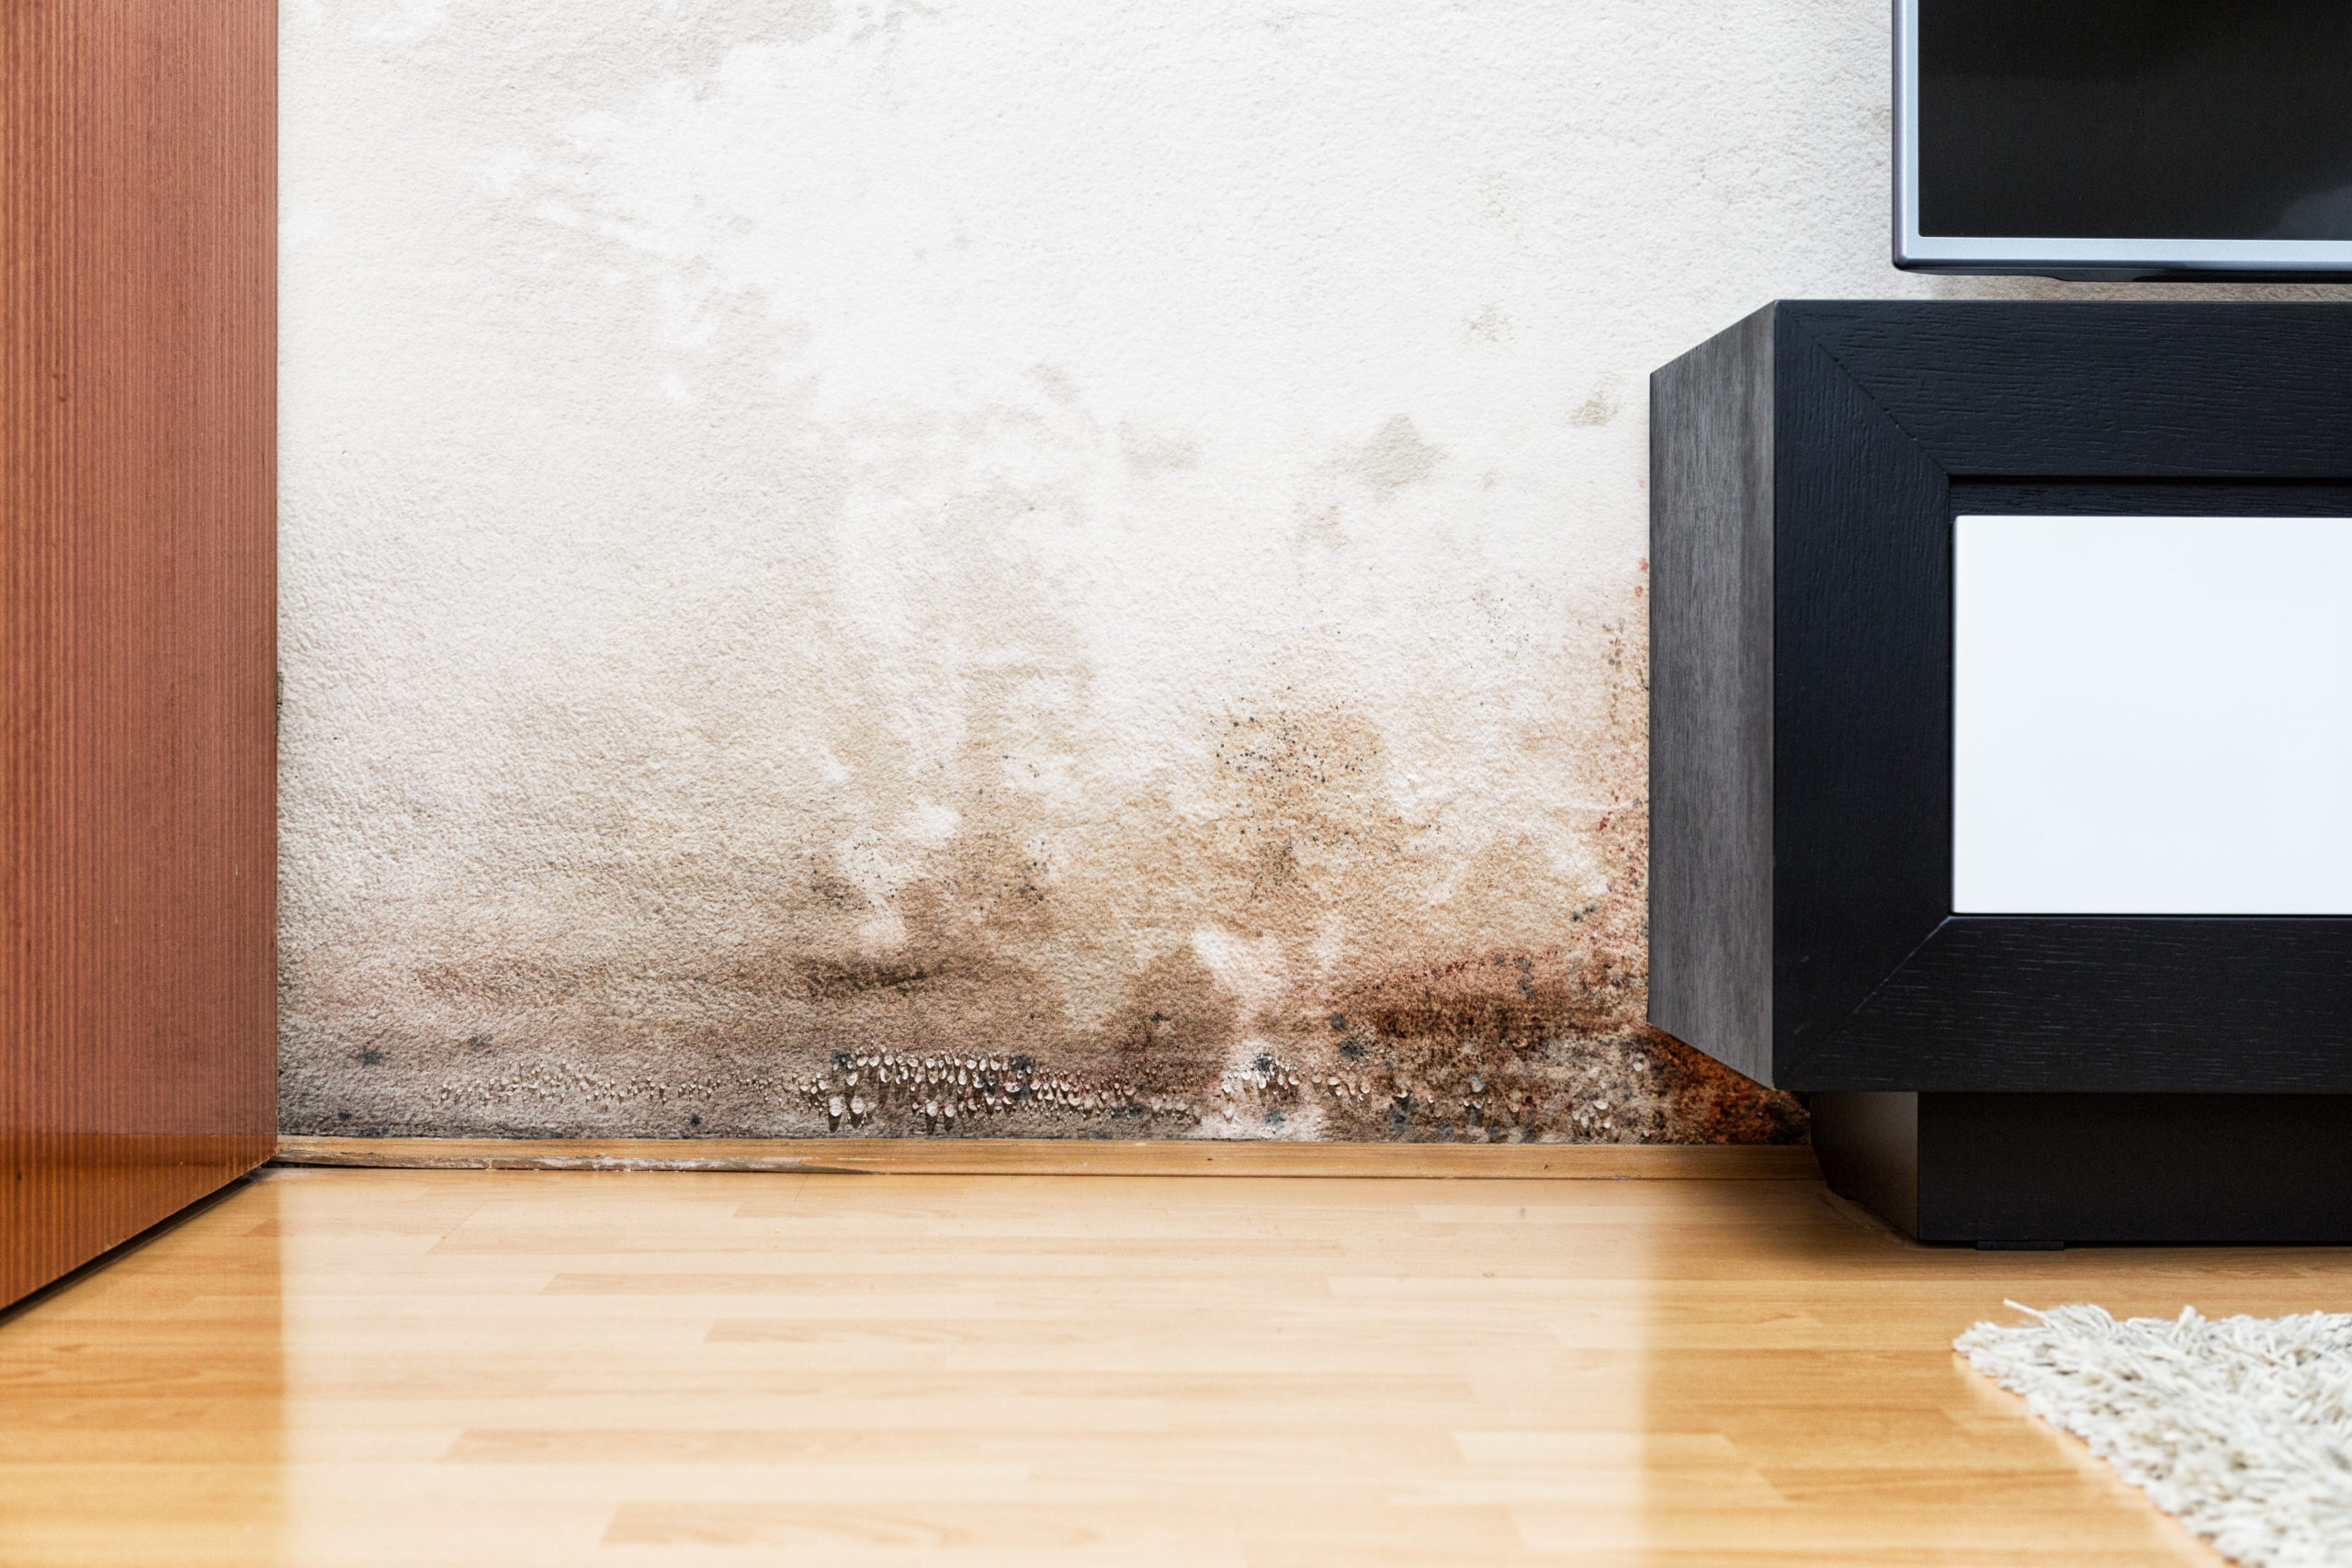 How Does Humidity Affect Indoor Air Quality?